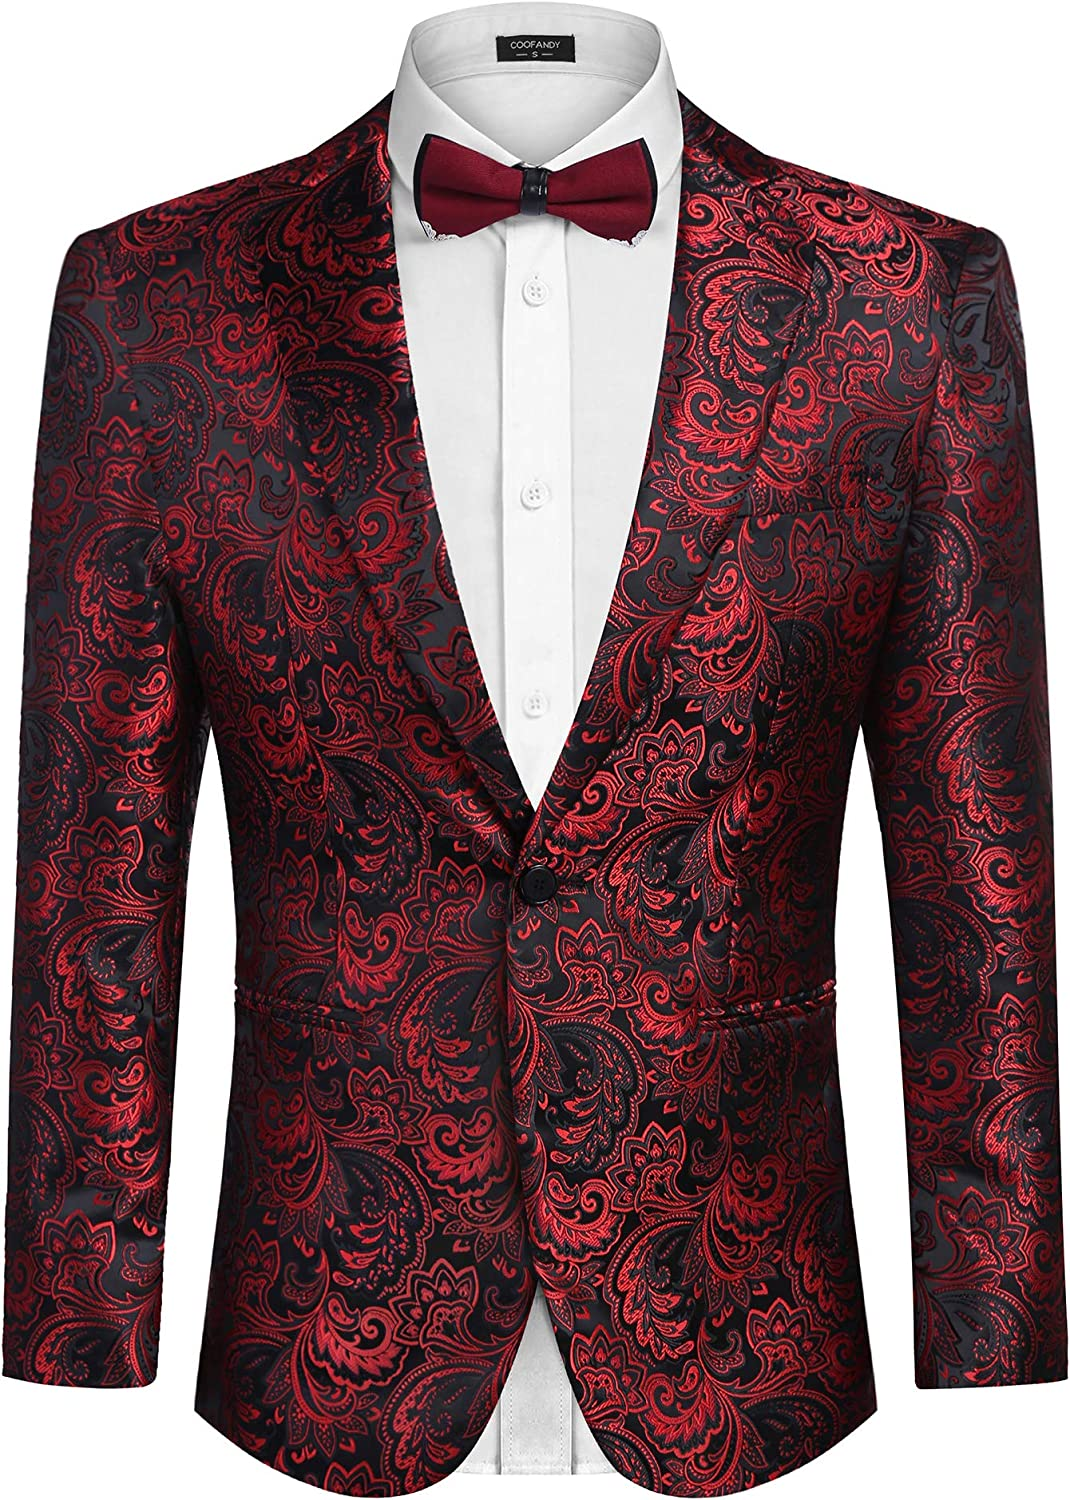 COOFADNY Mens Floral Tuxedo Jacket Slim Fit Shawl Collar Dress Suit Blazer